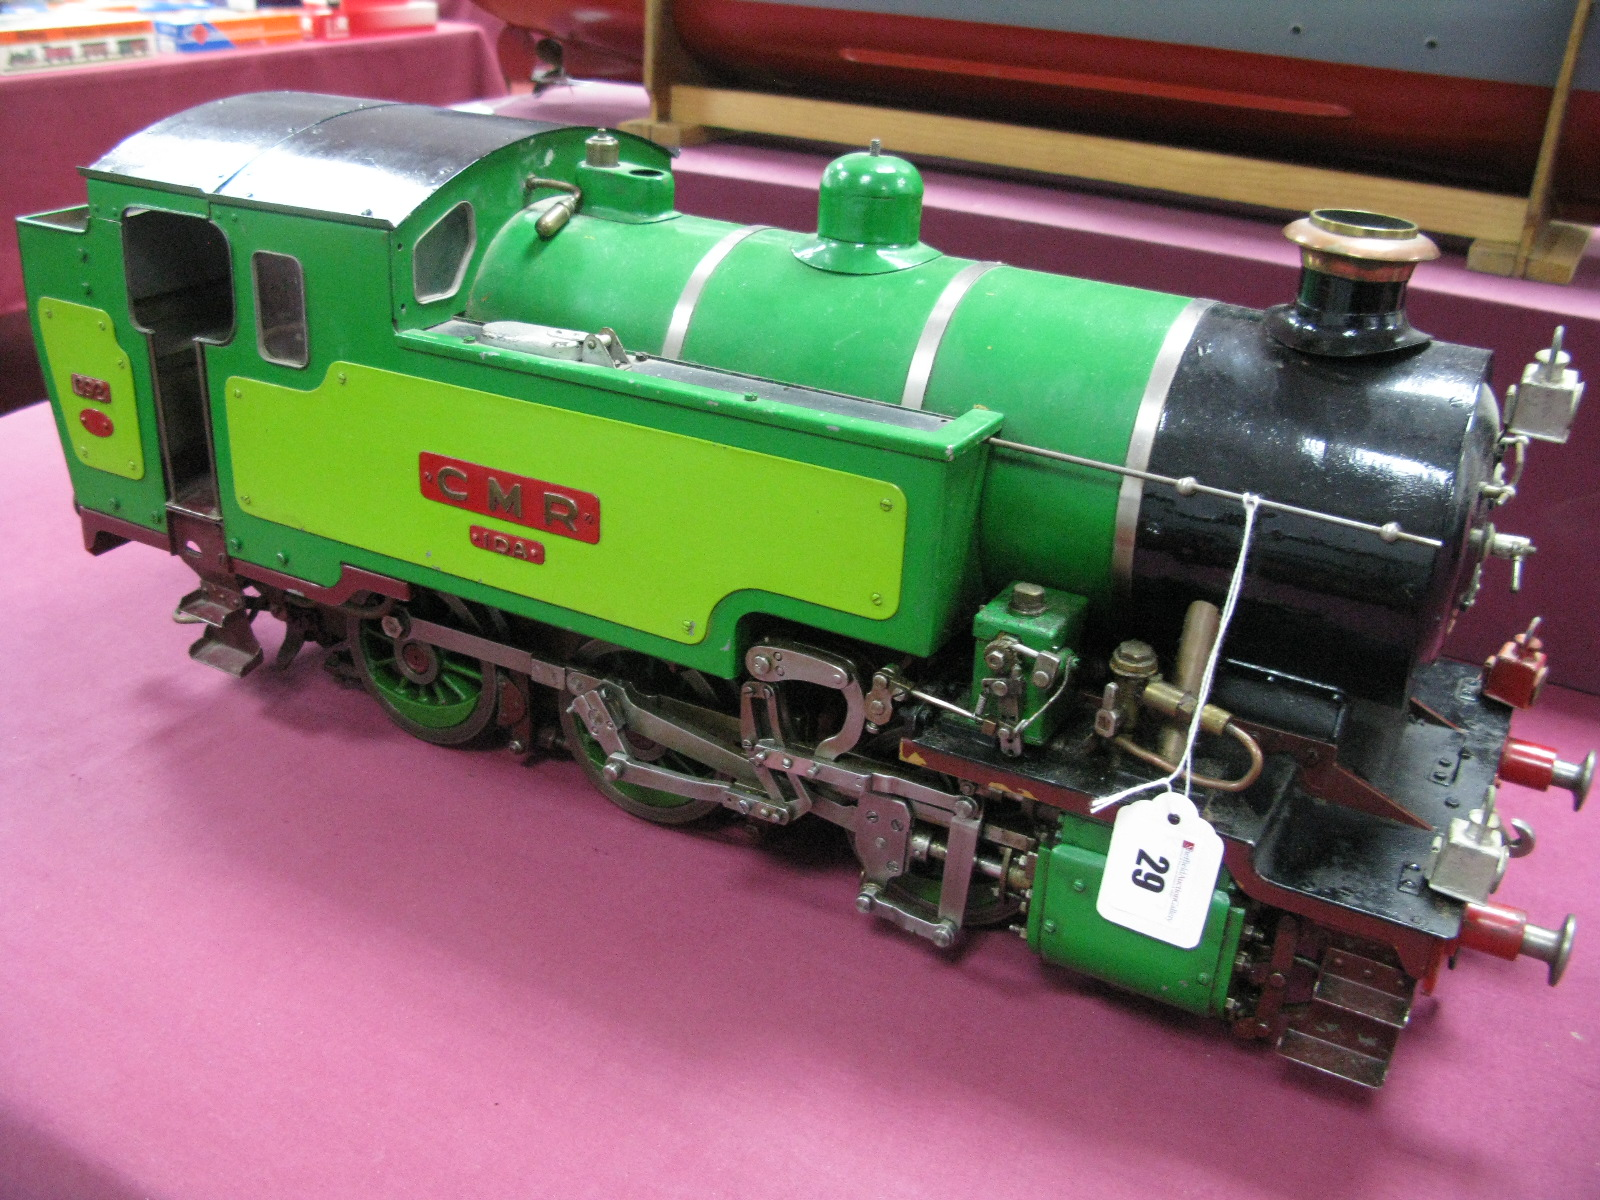 Lot 29 - A 3½ Inch Gauge Model of An 0-6-0 Tank Locomotive, built to a good standard and finished in two tone